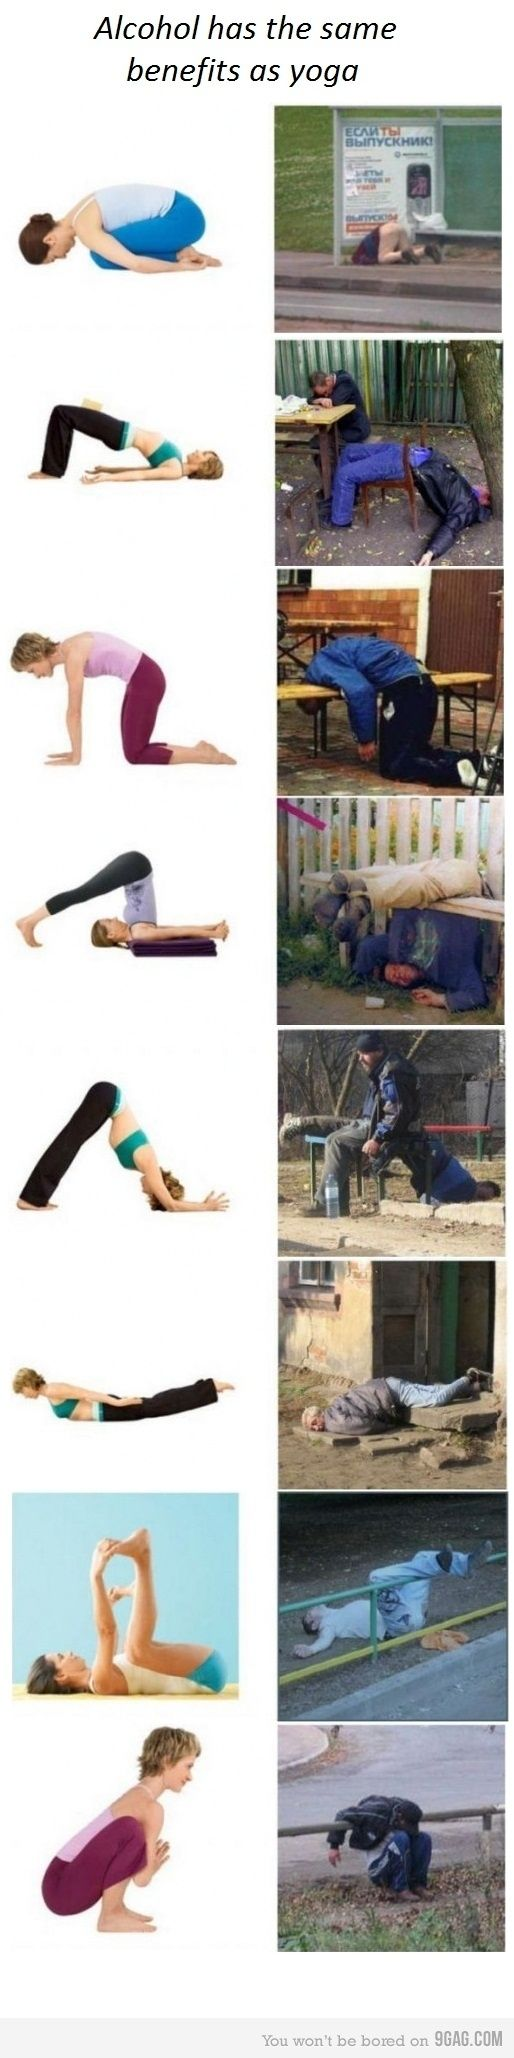 Alcohol has the same benefits as yoga!